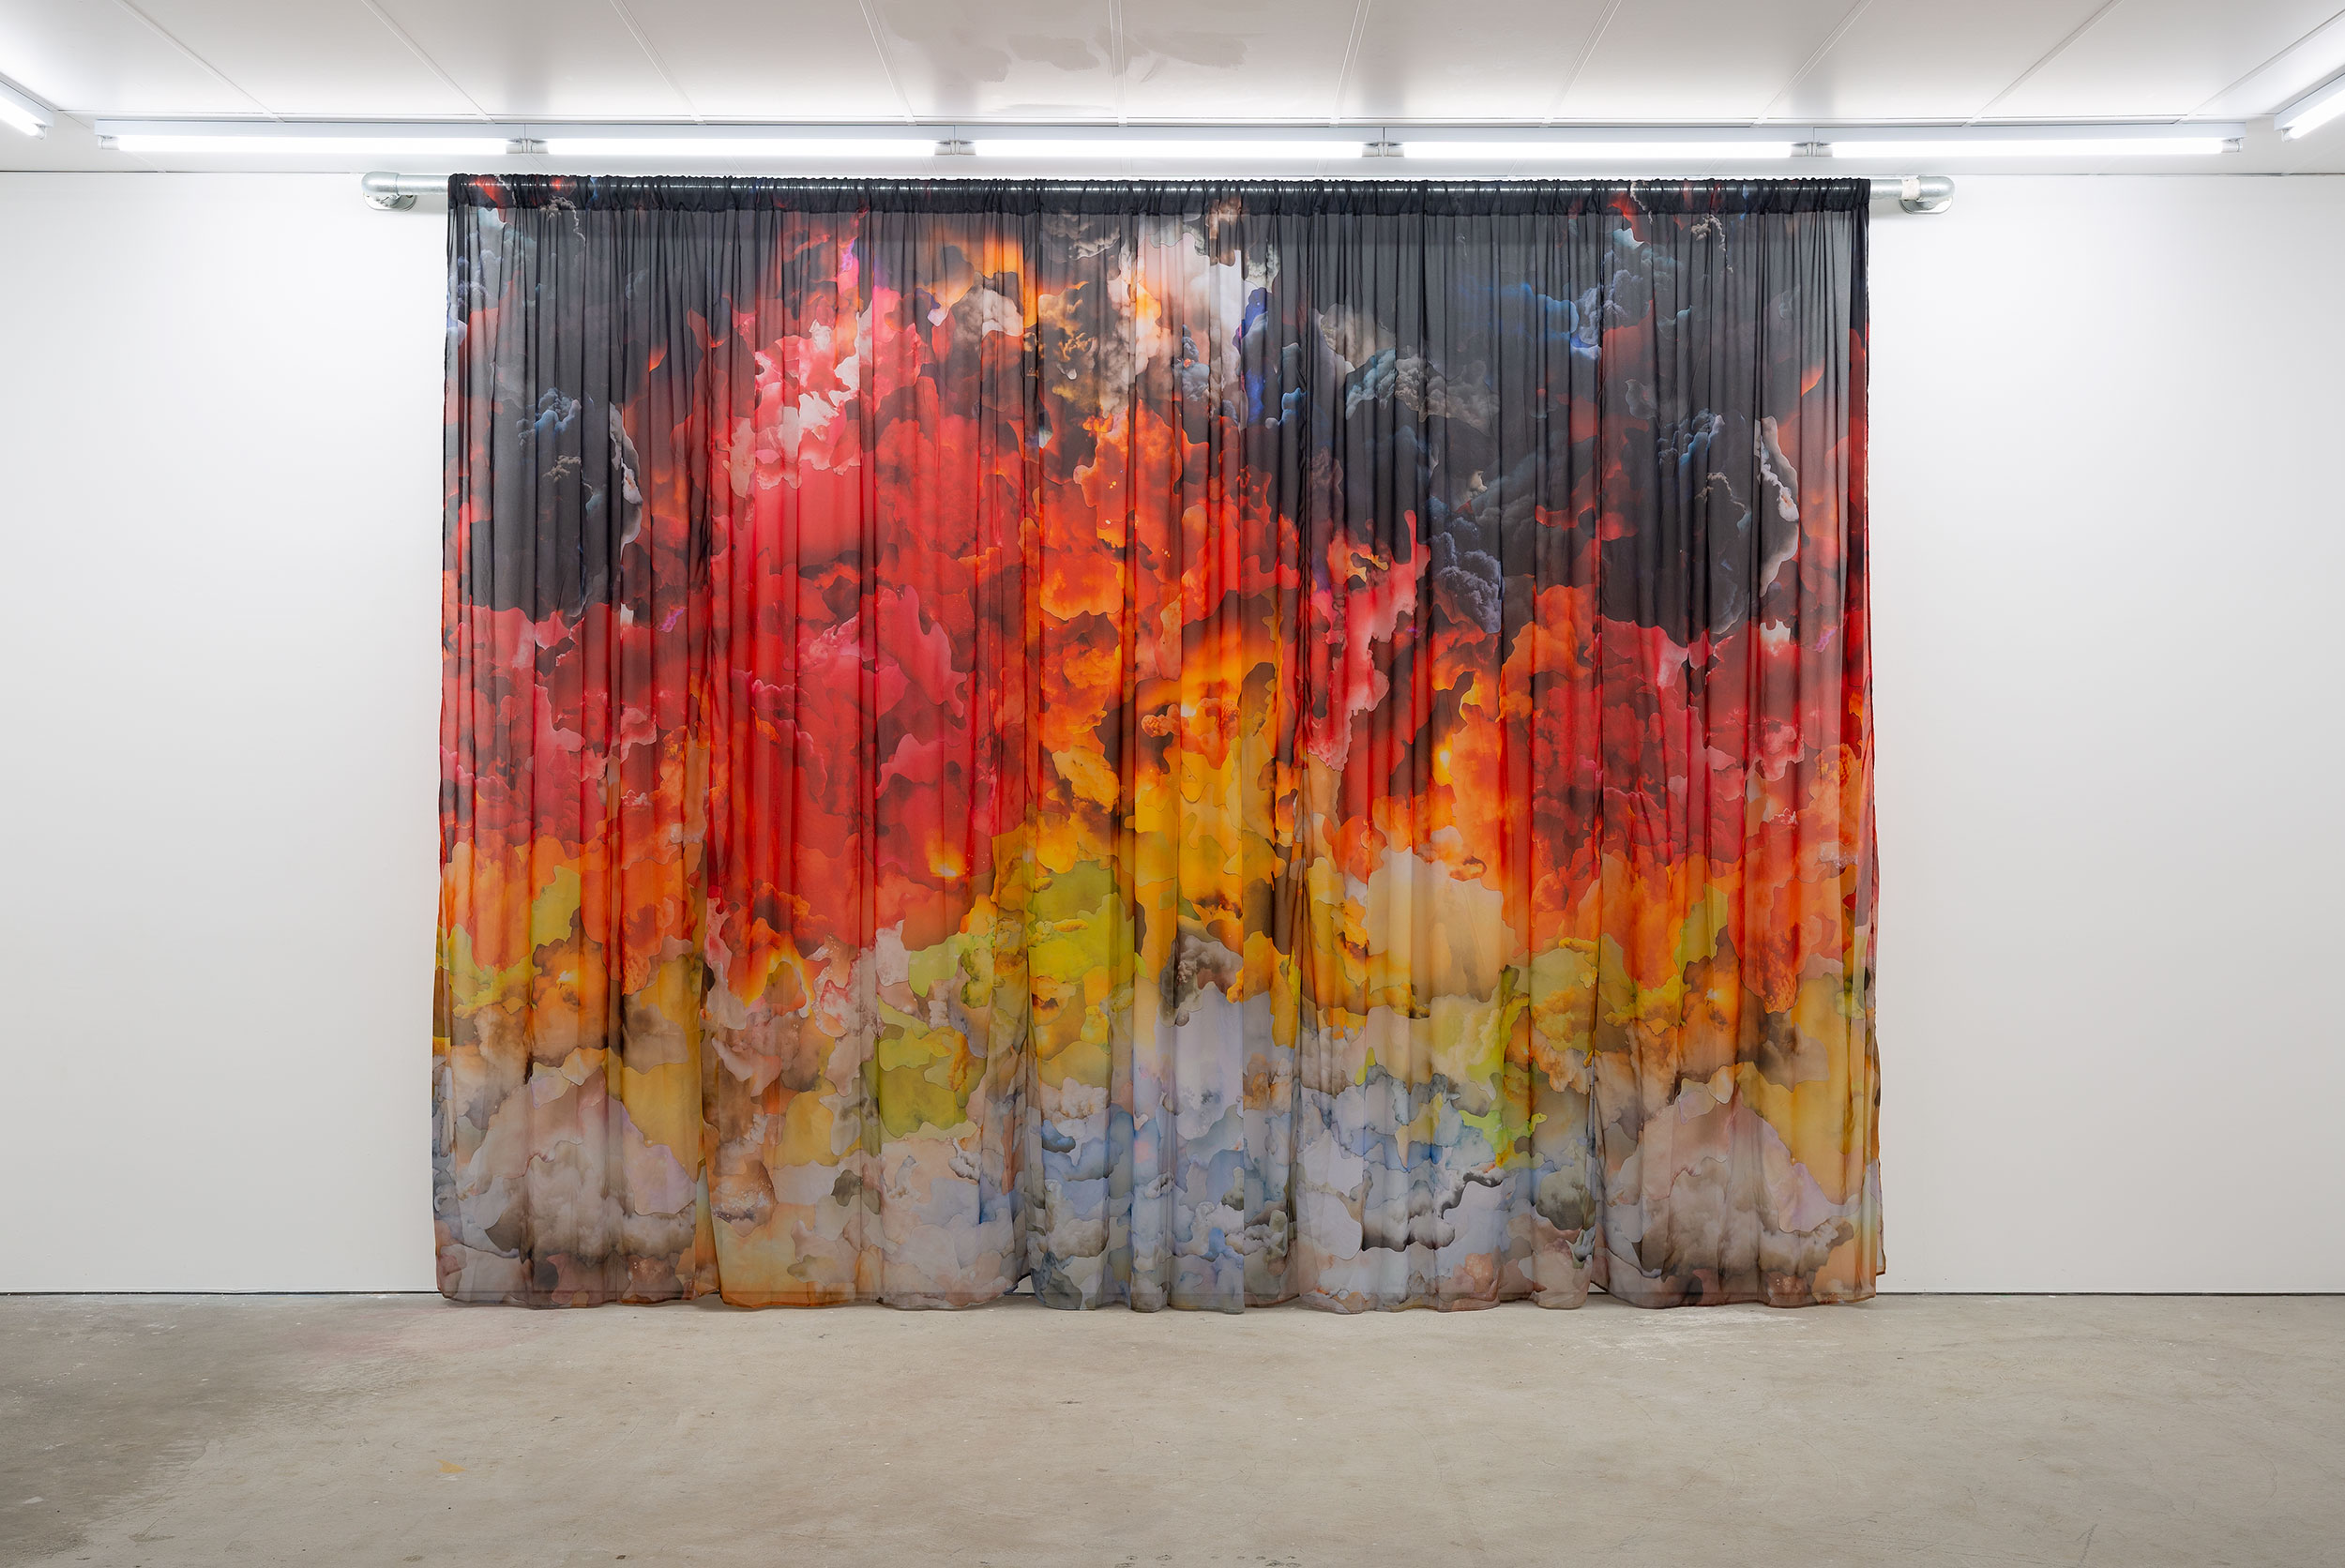 Installation view of Octopus 21: On Fire, 2021, featuring work by Jemima Wyman at Gertrude Contemporary. Photo: Christian Capurro.